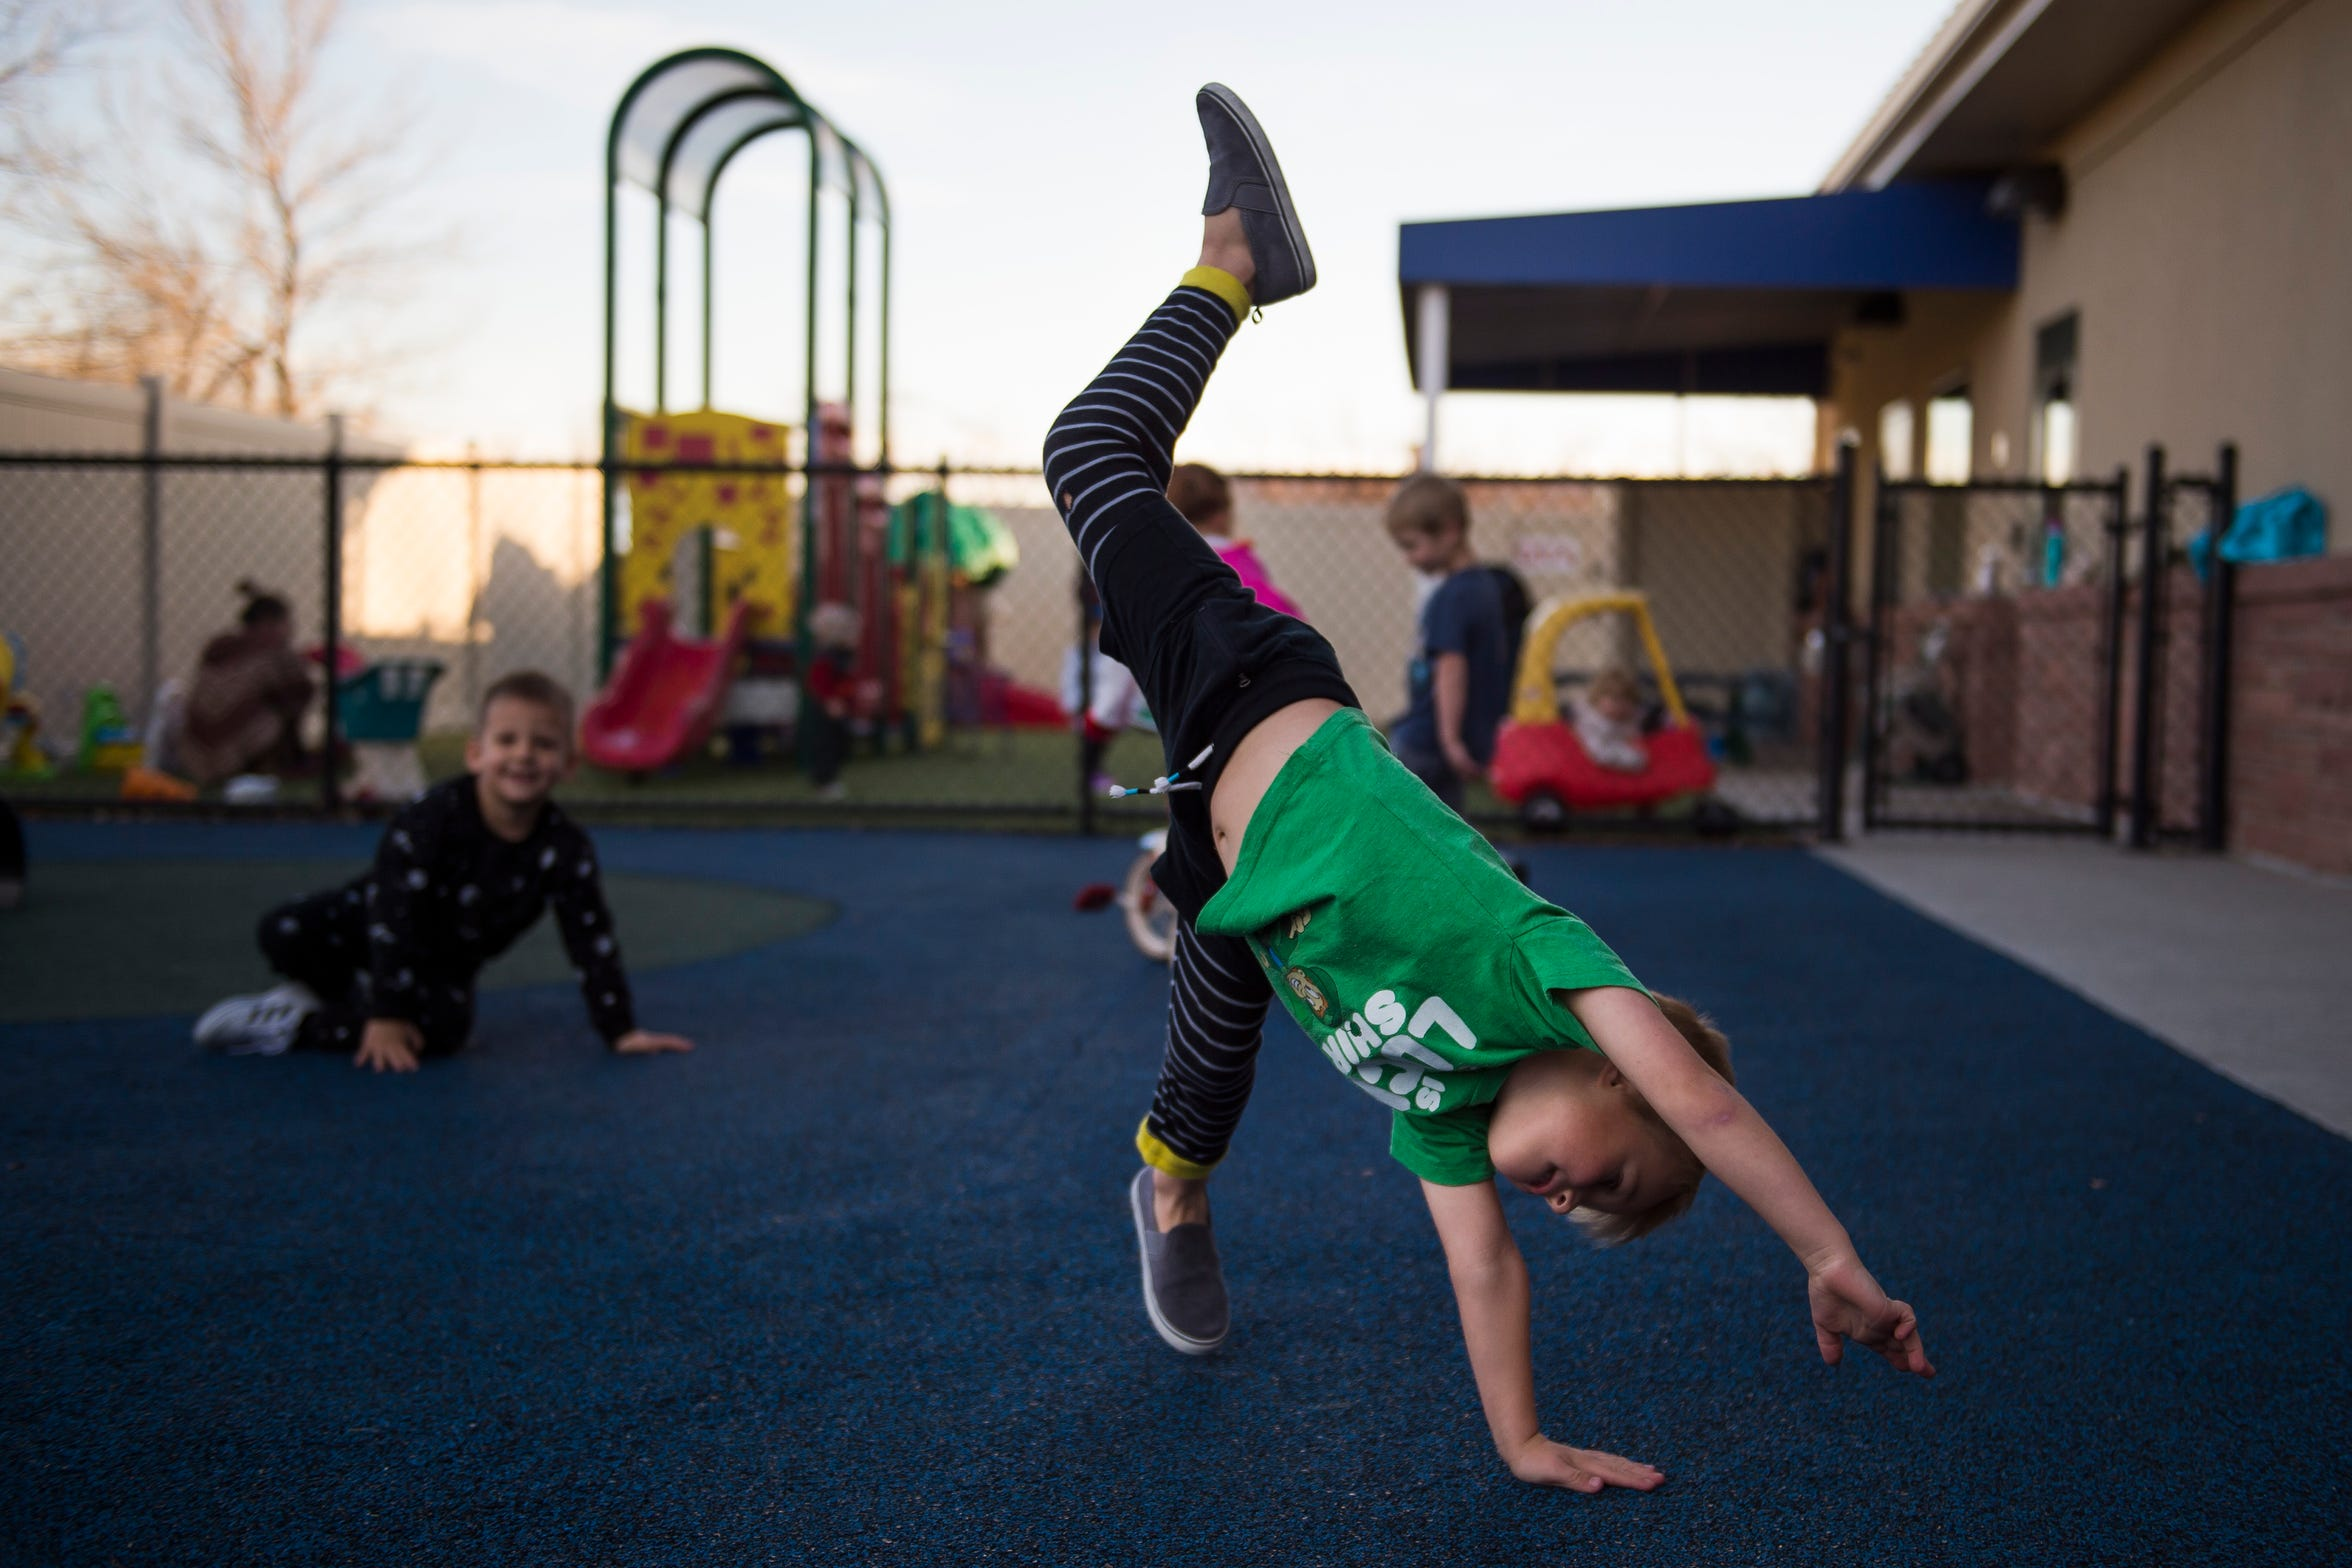 Sawyer Whitlock, 4, does a cartwheel during a recess time on Thursday, Nov. 15, 2018, at The Learning Experience child development center in Fort Collins, Colo.